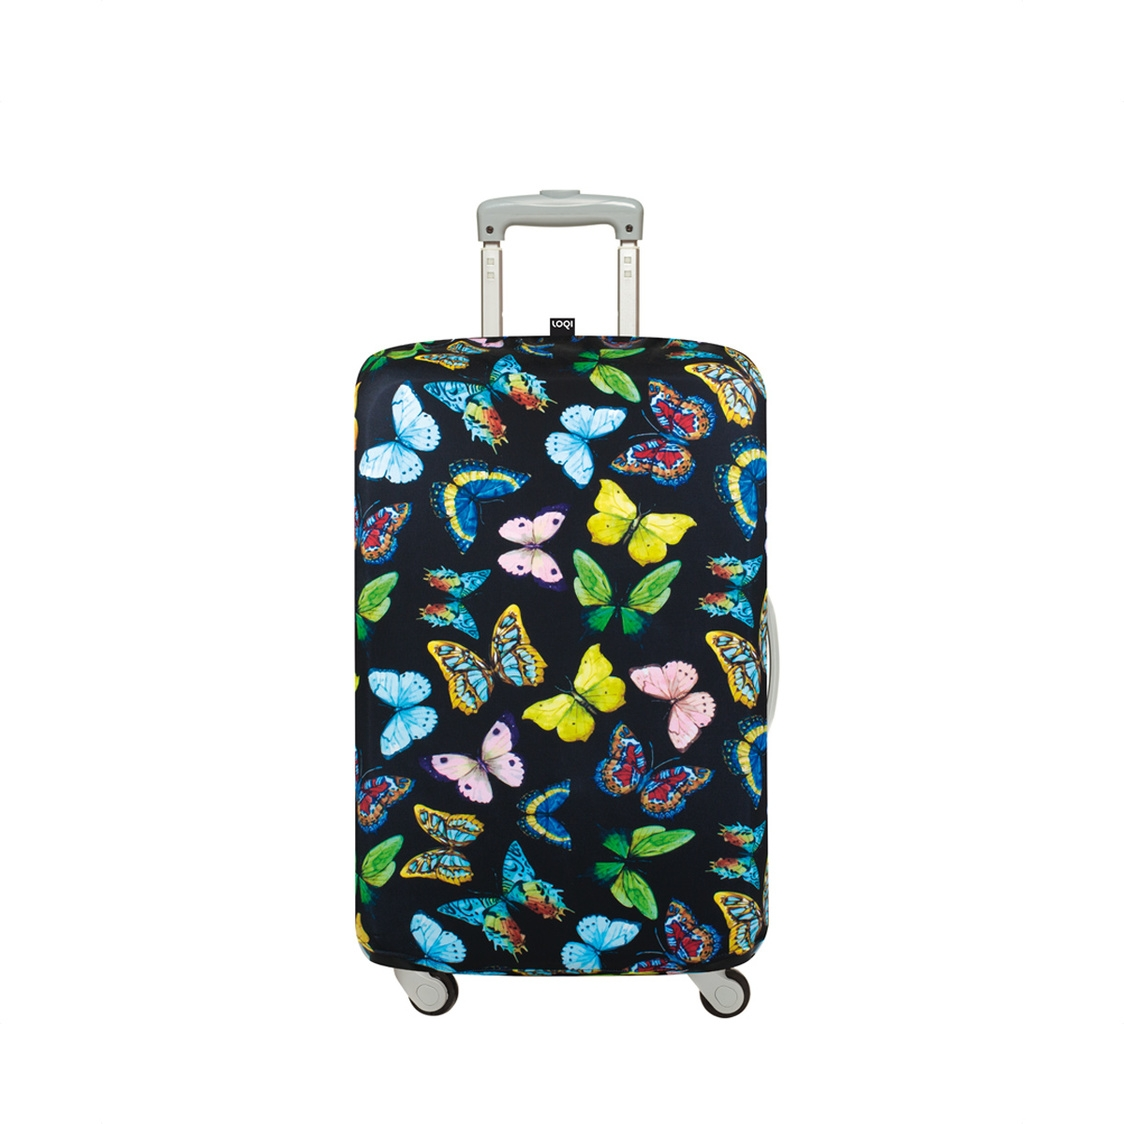 Wild Large Luggage Cover - Butterflies